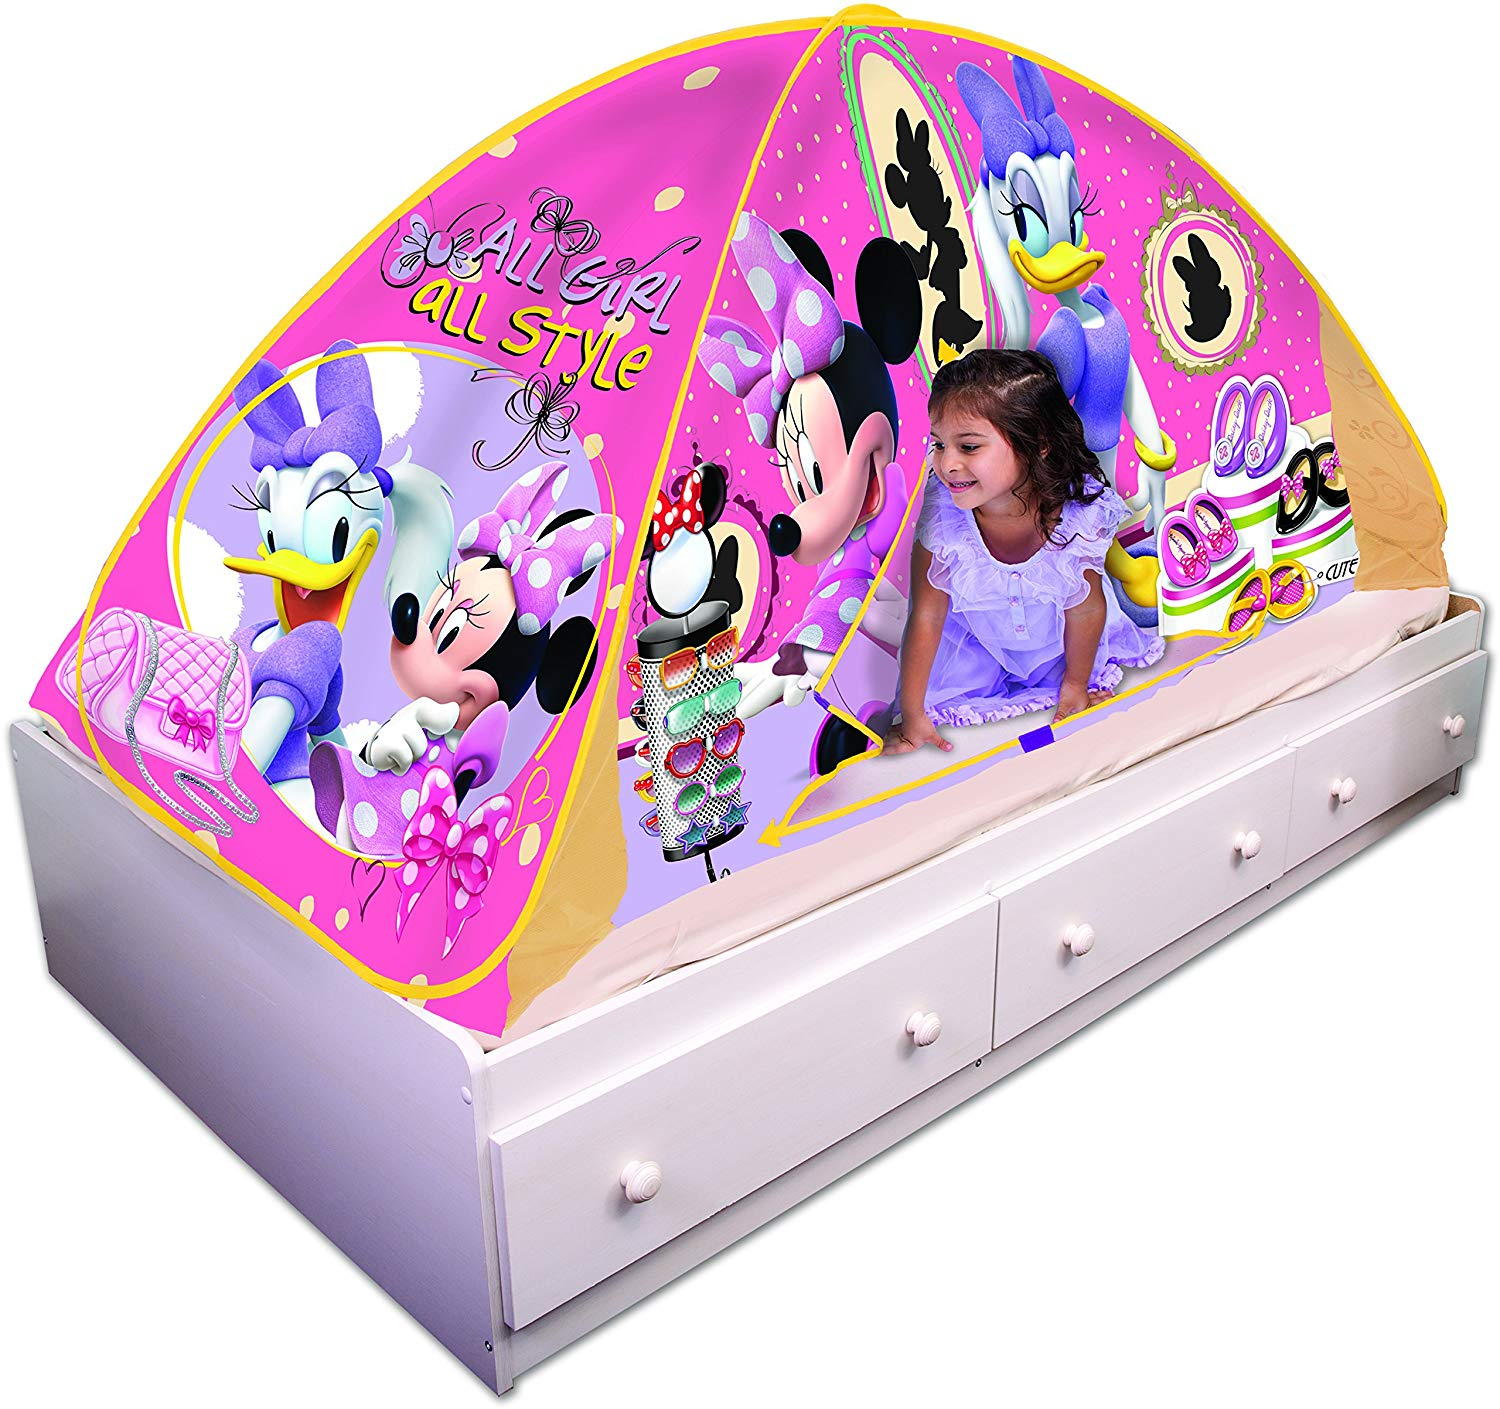 sale retailer f595e 7374f Playhut Disney Minnie Mouse Bed Tent Playhouse - Bed Tent ...